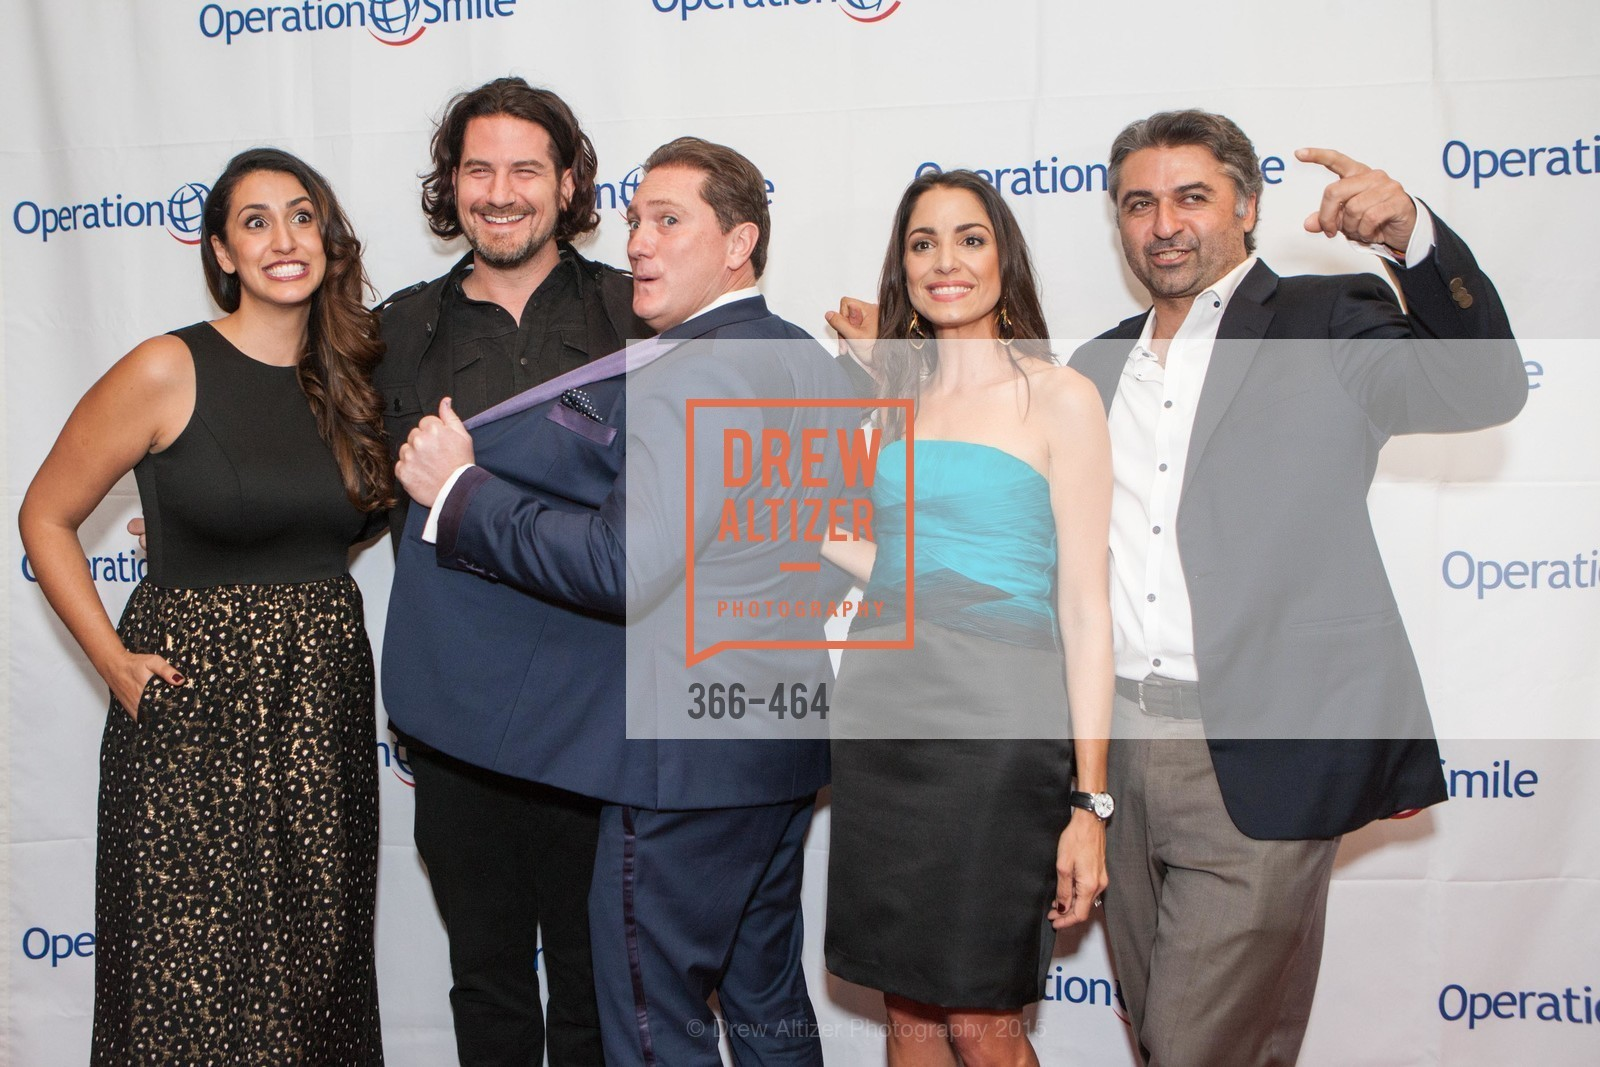 Sara Agah Franti, Matt Nathanson, Liam Mayclem, Shirin Aryanpour, Hooman Khalili, Operation Smile Presents THE SAN FRANCISCO 2015 SMILE GALA, InterContinental Hotel, November 7th, 2015,Drew Altizer, Drew Altizer Photography, full-service event agency, private events, San Francisco photographer, photographer California